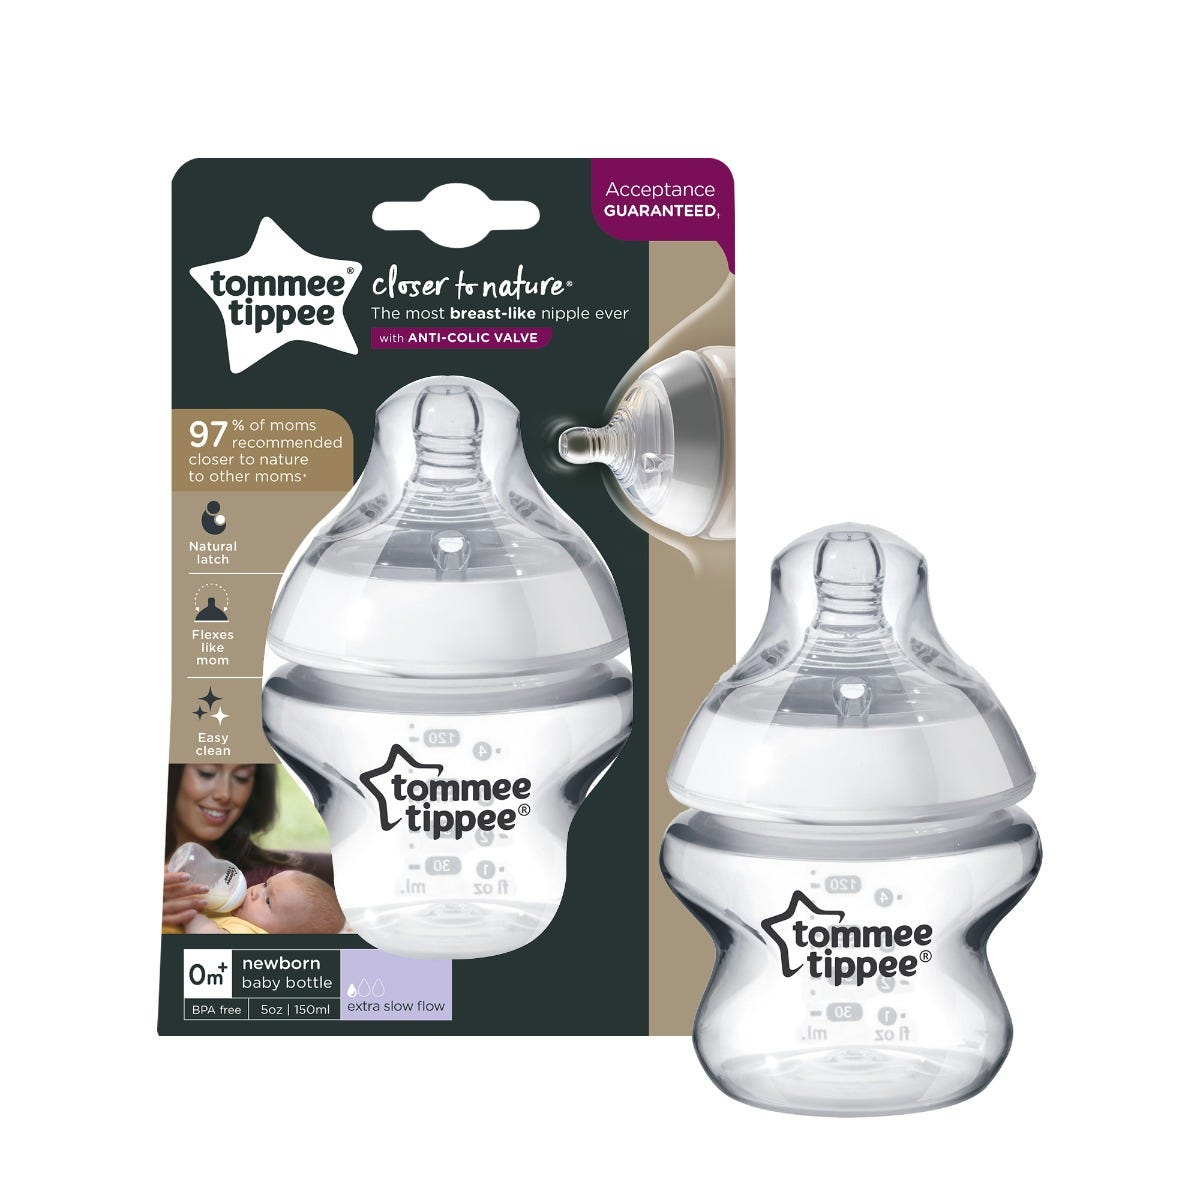 1-x-clear-5-oz-closer-to-nature-baby-bottles-with-tommee-tippee-logo-with-packaging-in-background